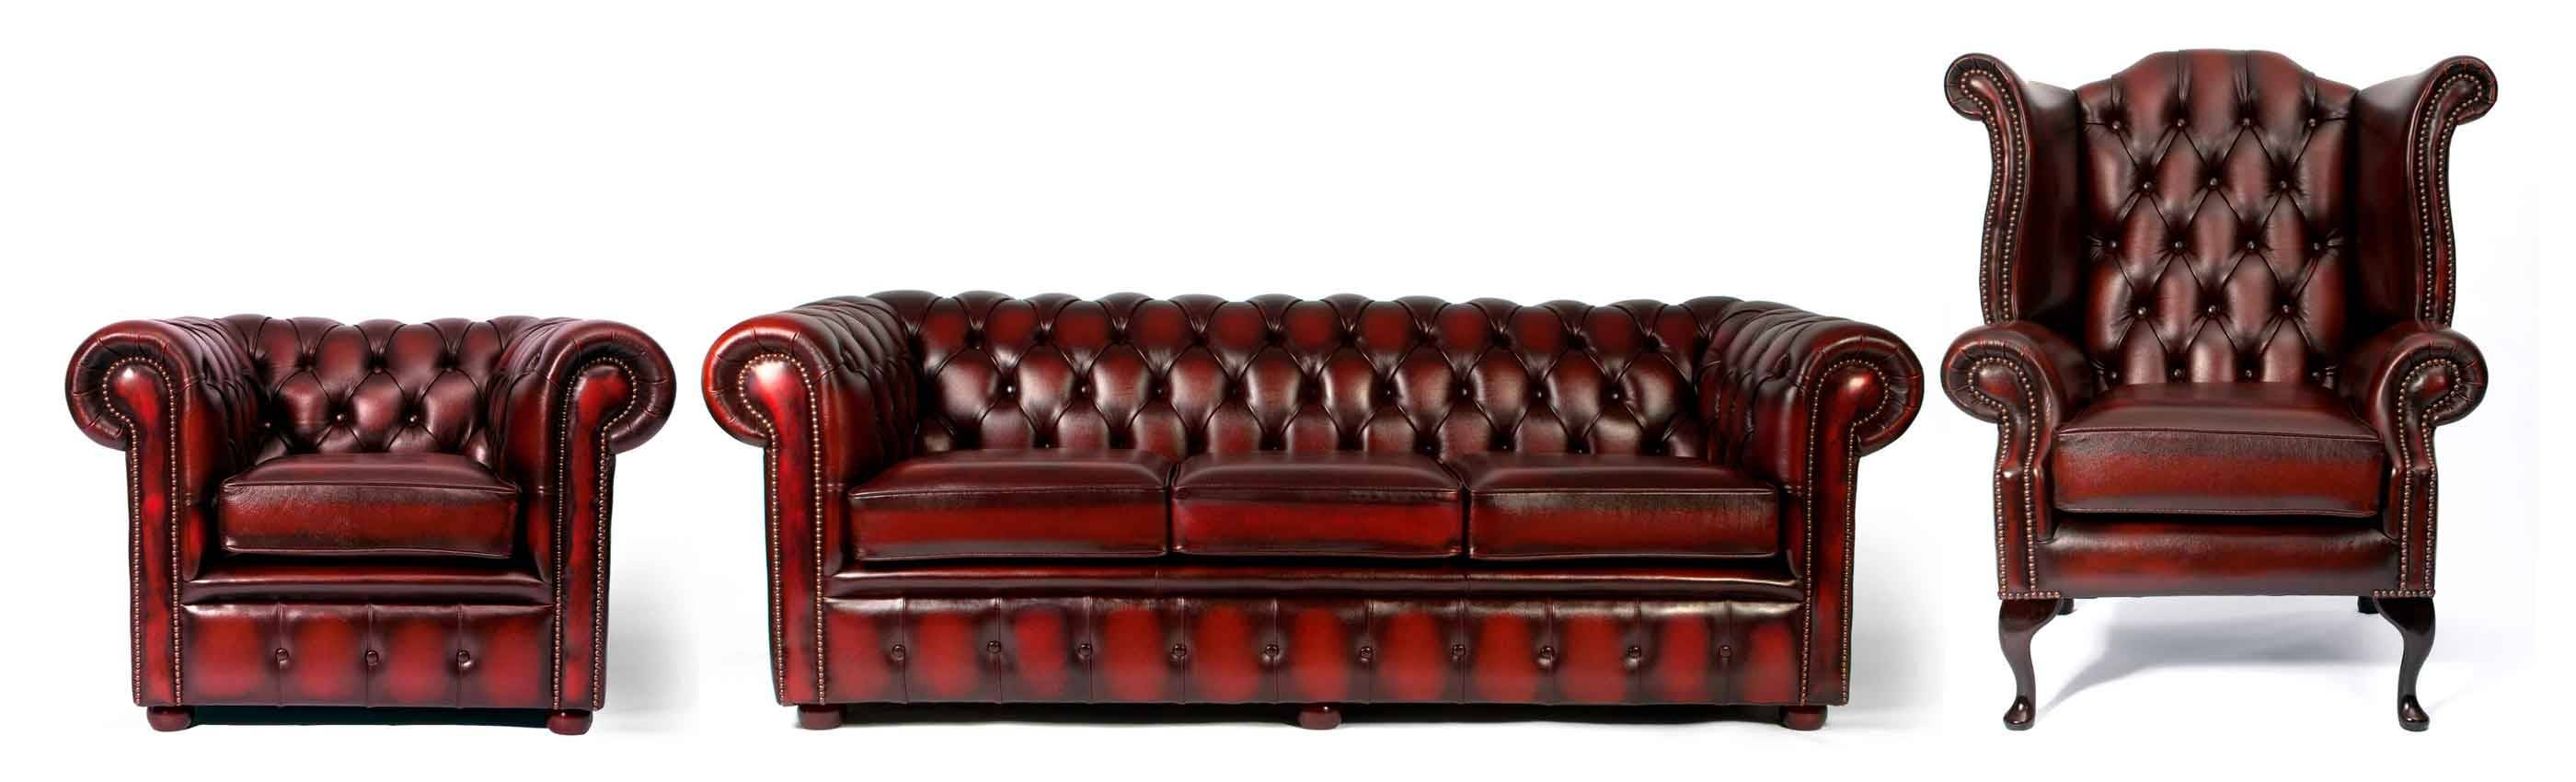 Furniture: Enchanting Chesterfield Couch For Living Room Furniture pertaining to Red Leather Chesterfield Sofas (Image 9 of 15)